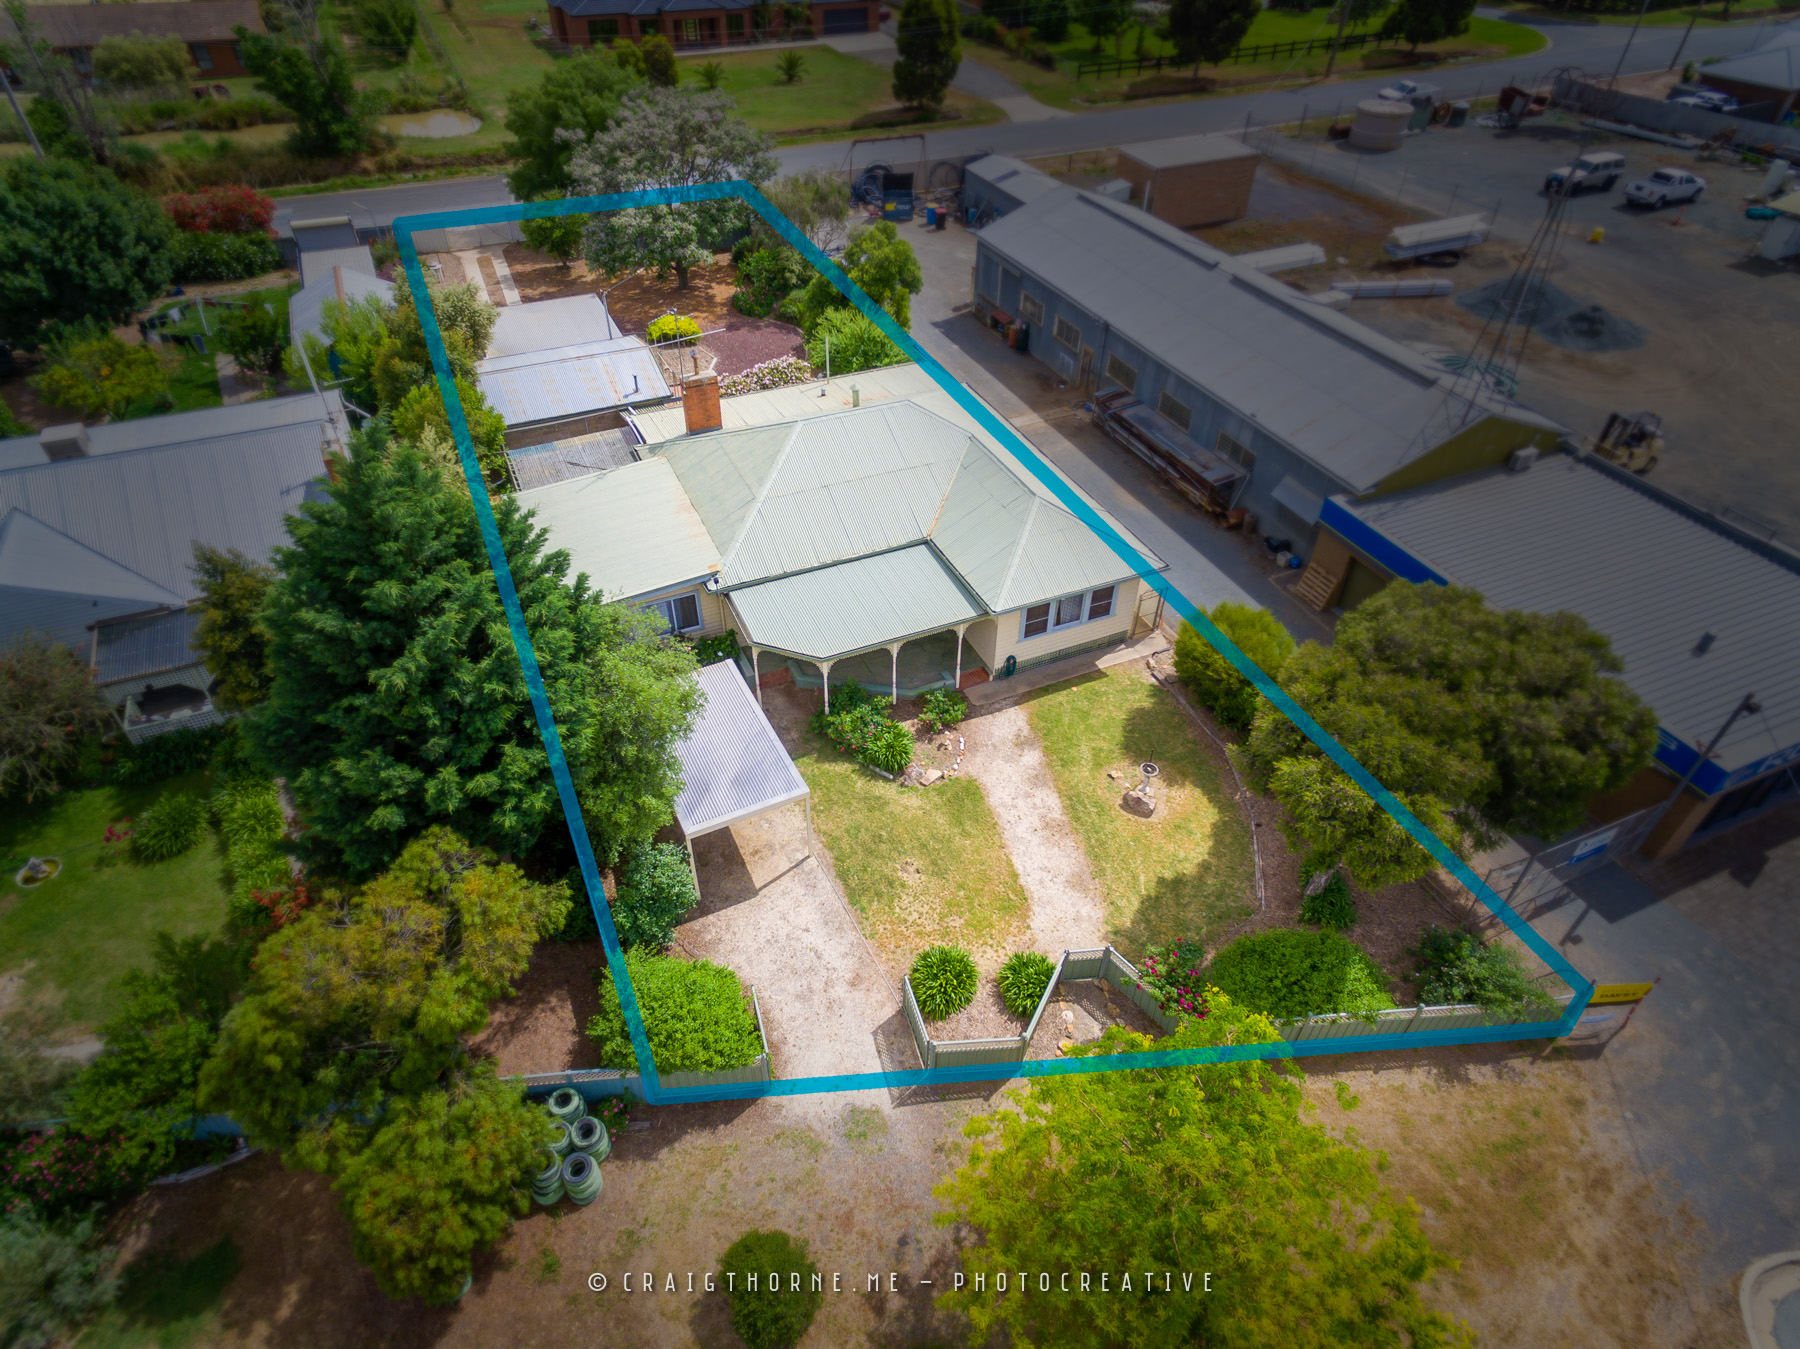 20161118-8-Hosie-Road-Shepparton-East-©CT-DJI_0019.jpg